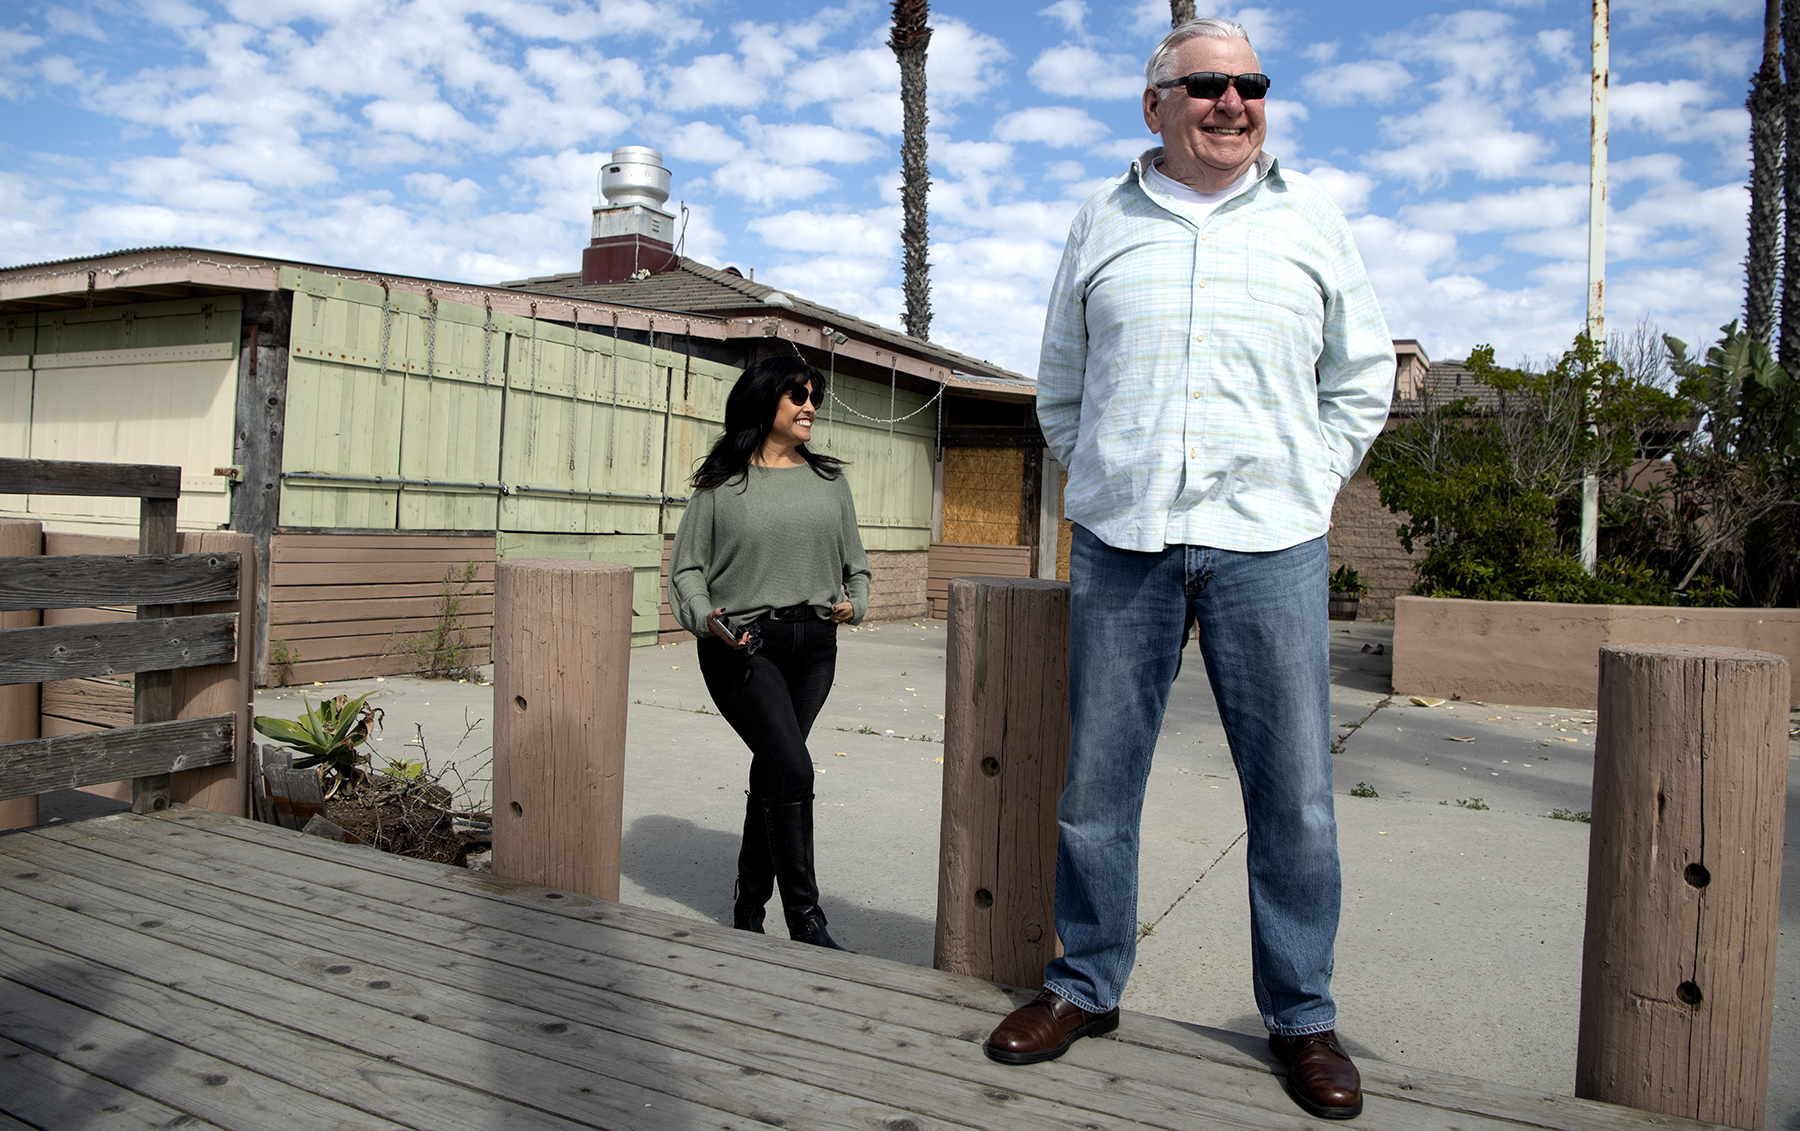 LB Post:  Beach House restaurant is a step or two closer to reality